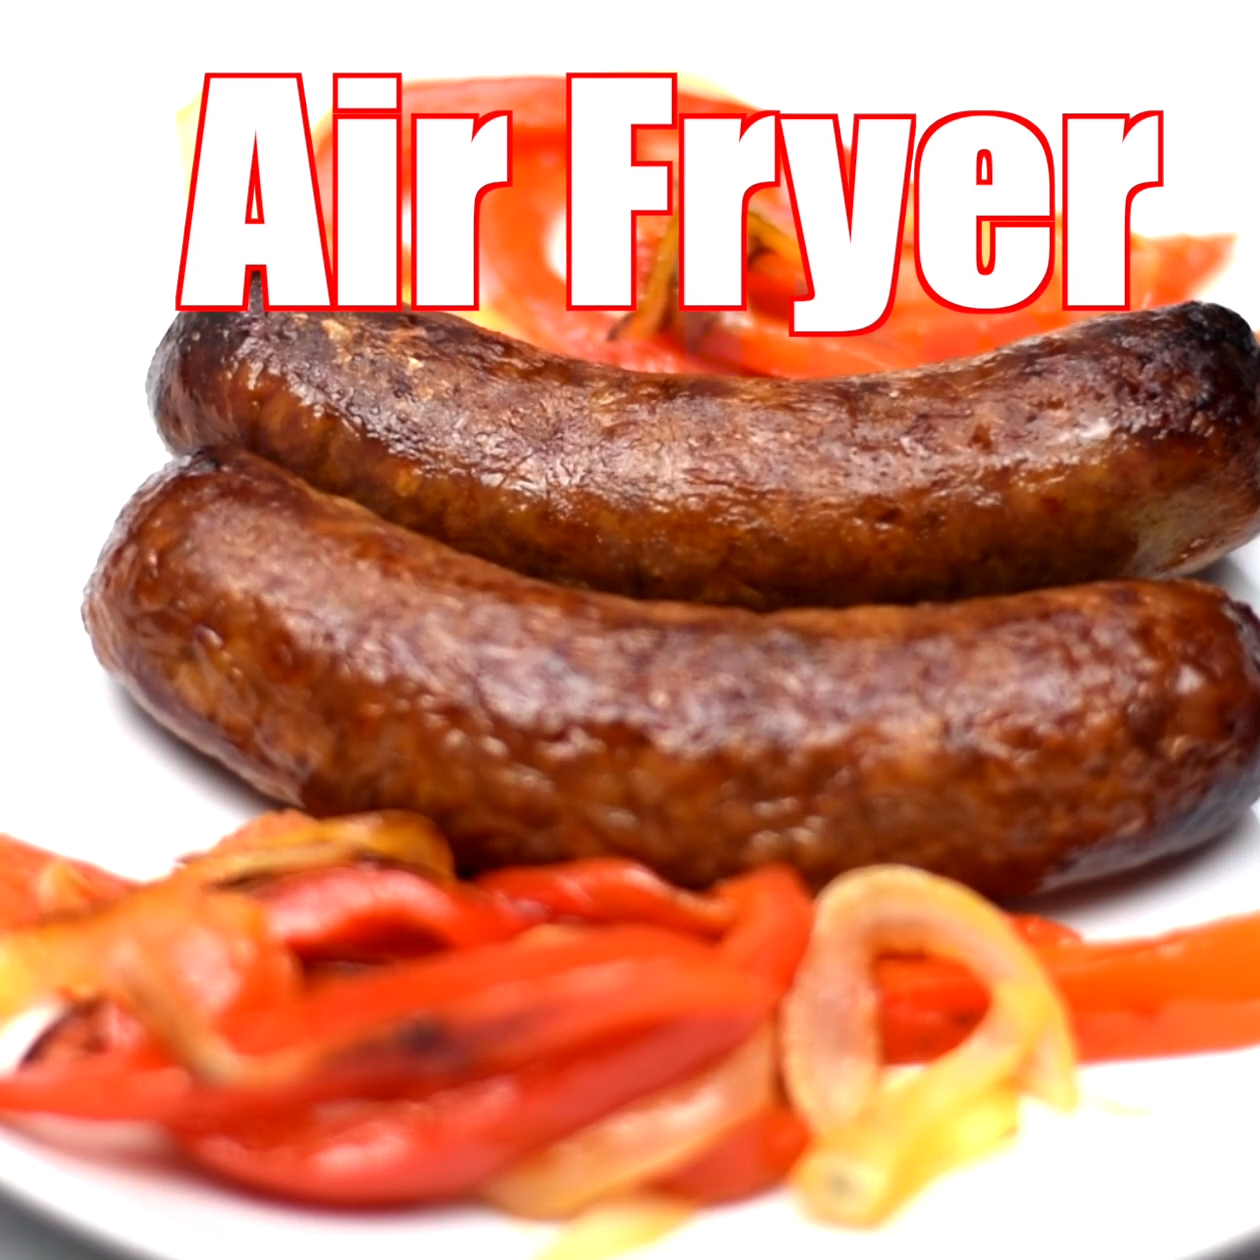 air fryer recipes and tips in 2020 Air fryer recipes